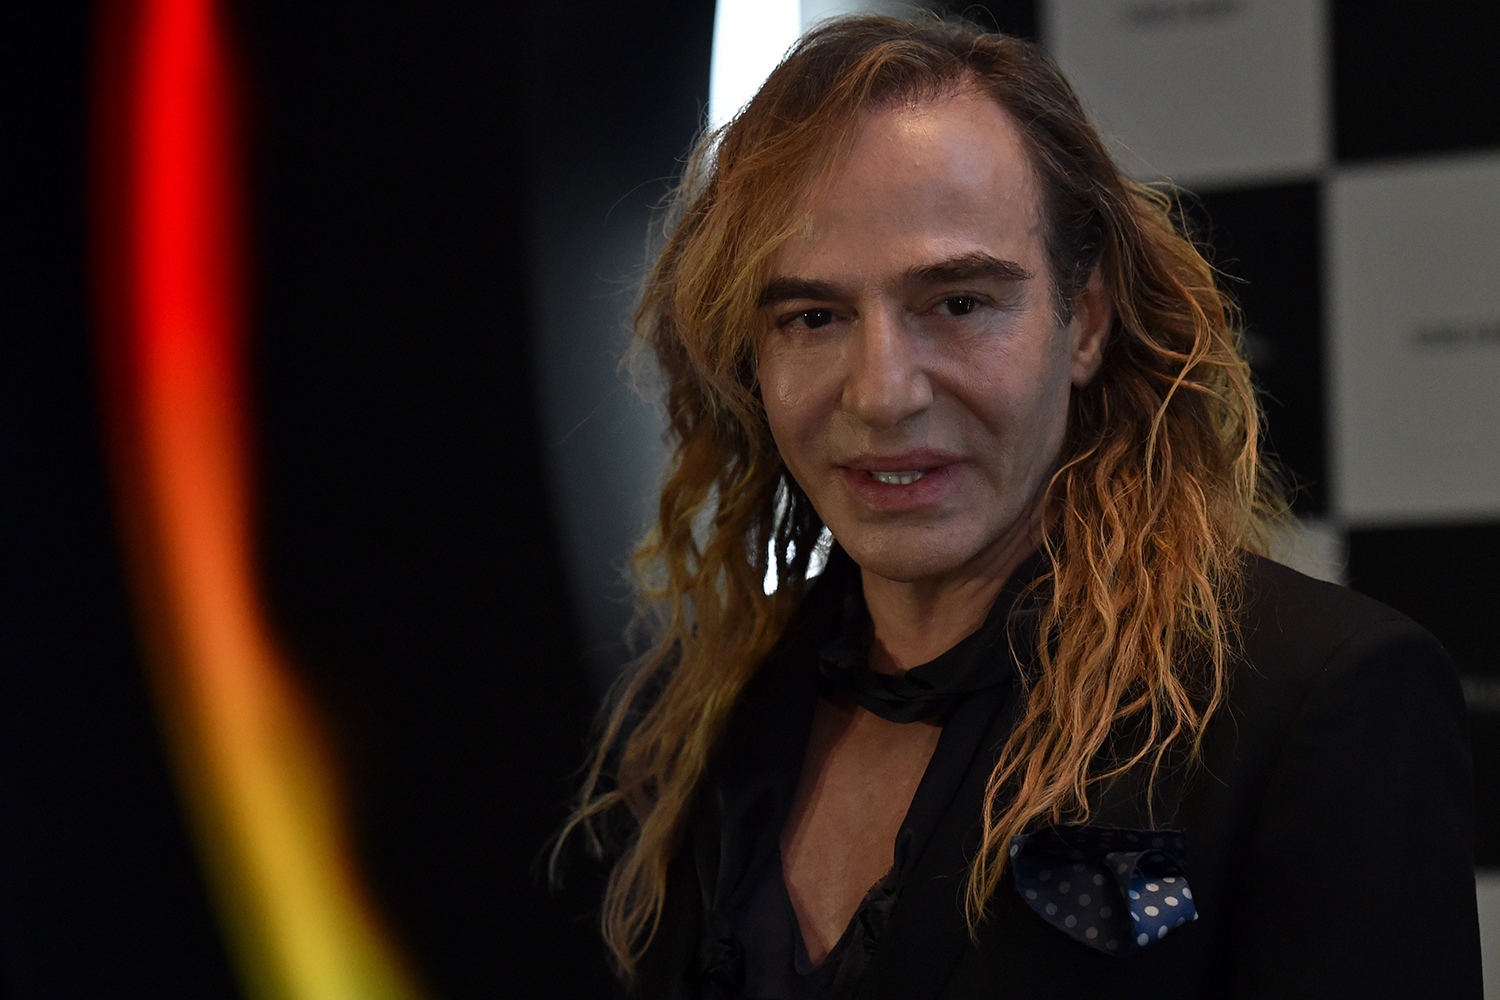 British designer John Galliano gives a press conference on his new work as a consultant for Russian cosmetics retailer L'Etoile in at the Barvikha Luxury Village Concert Hall just outside Moscow, on May 22, 2014. Galliano, who was ousted from fashion house Dior over an anti-Semitic outburst, landed himself a new job in Russia as a consultant for L'Etoile. AFP PHOTO / KIRILL KUDRYAVTSEV (Photo credit should read KIRILL KUDRYAVTSEV/AFP/Getty Images)